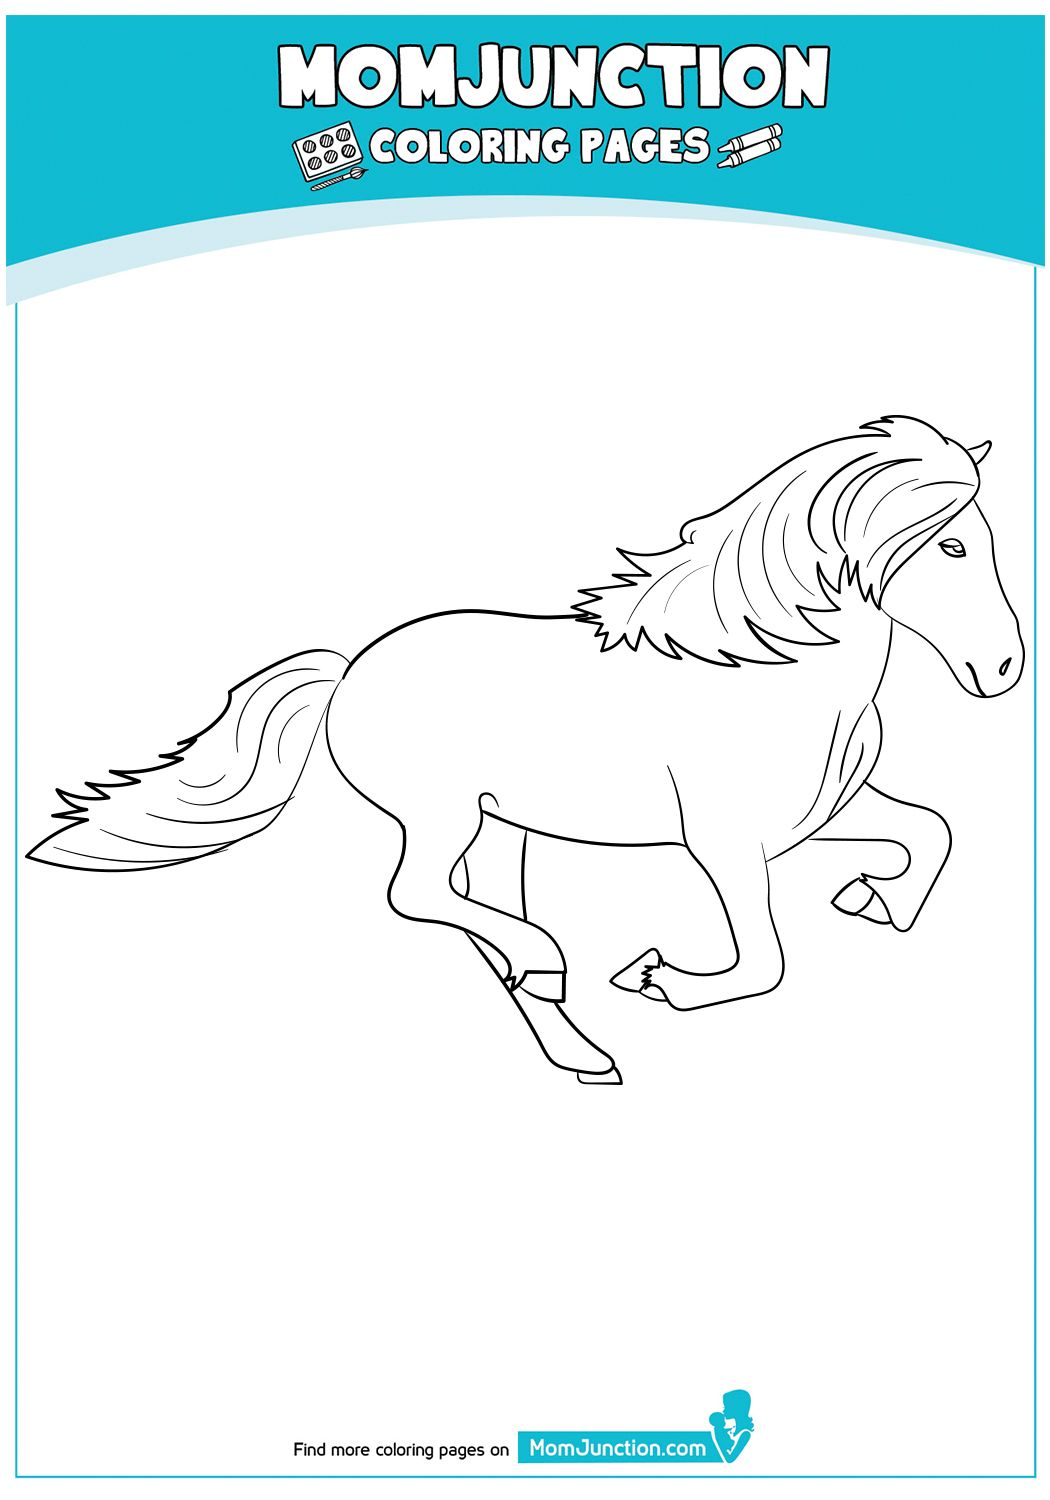 Icelandic Horse Horse Coloring Pages Horse Coloring Coloring Pages